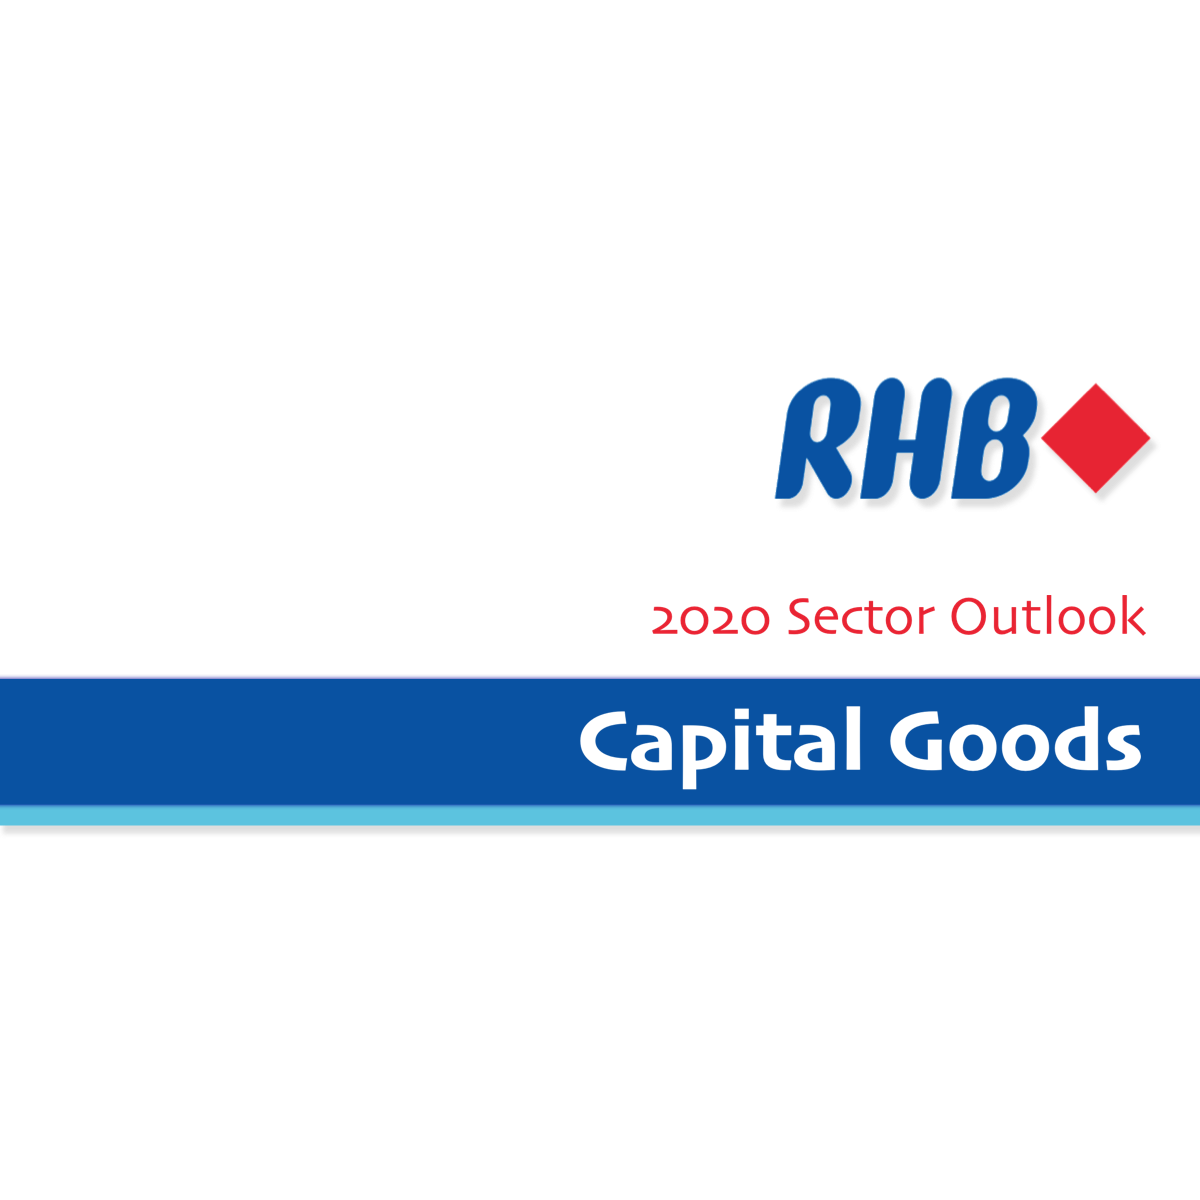 Capital Goods Sector 2020 Outlook - RHB Invest | SGinvestors.io